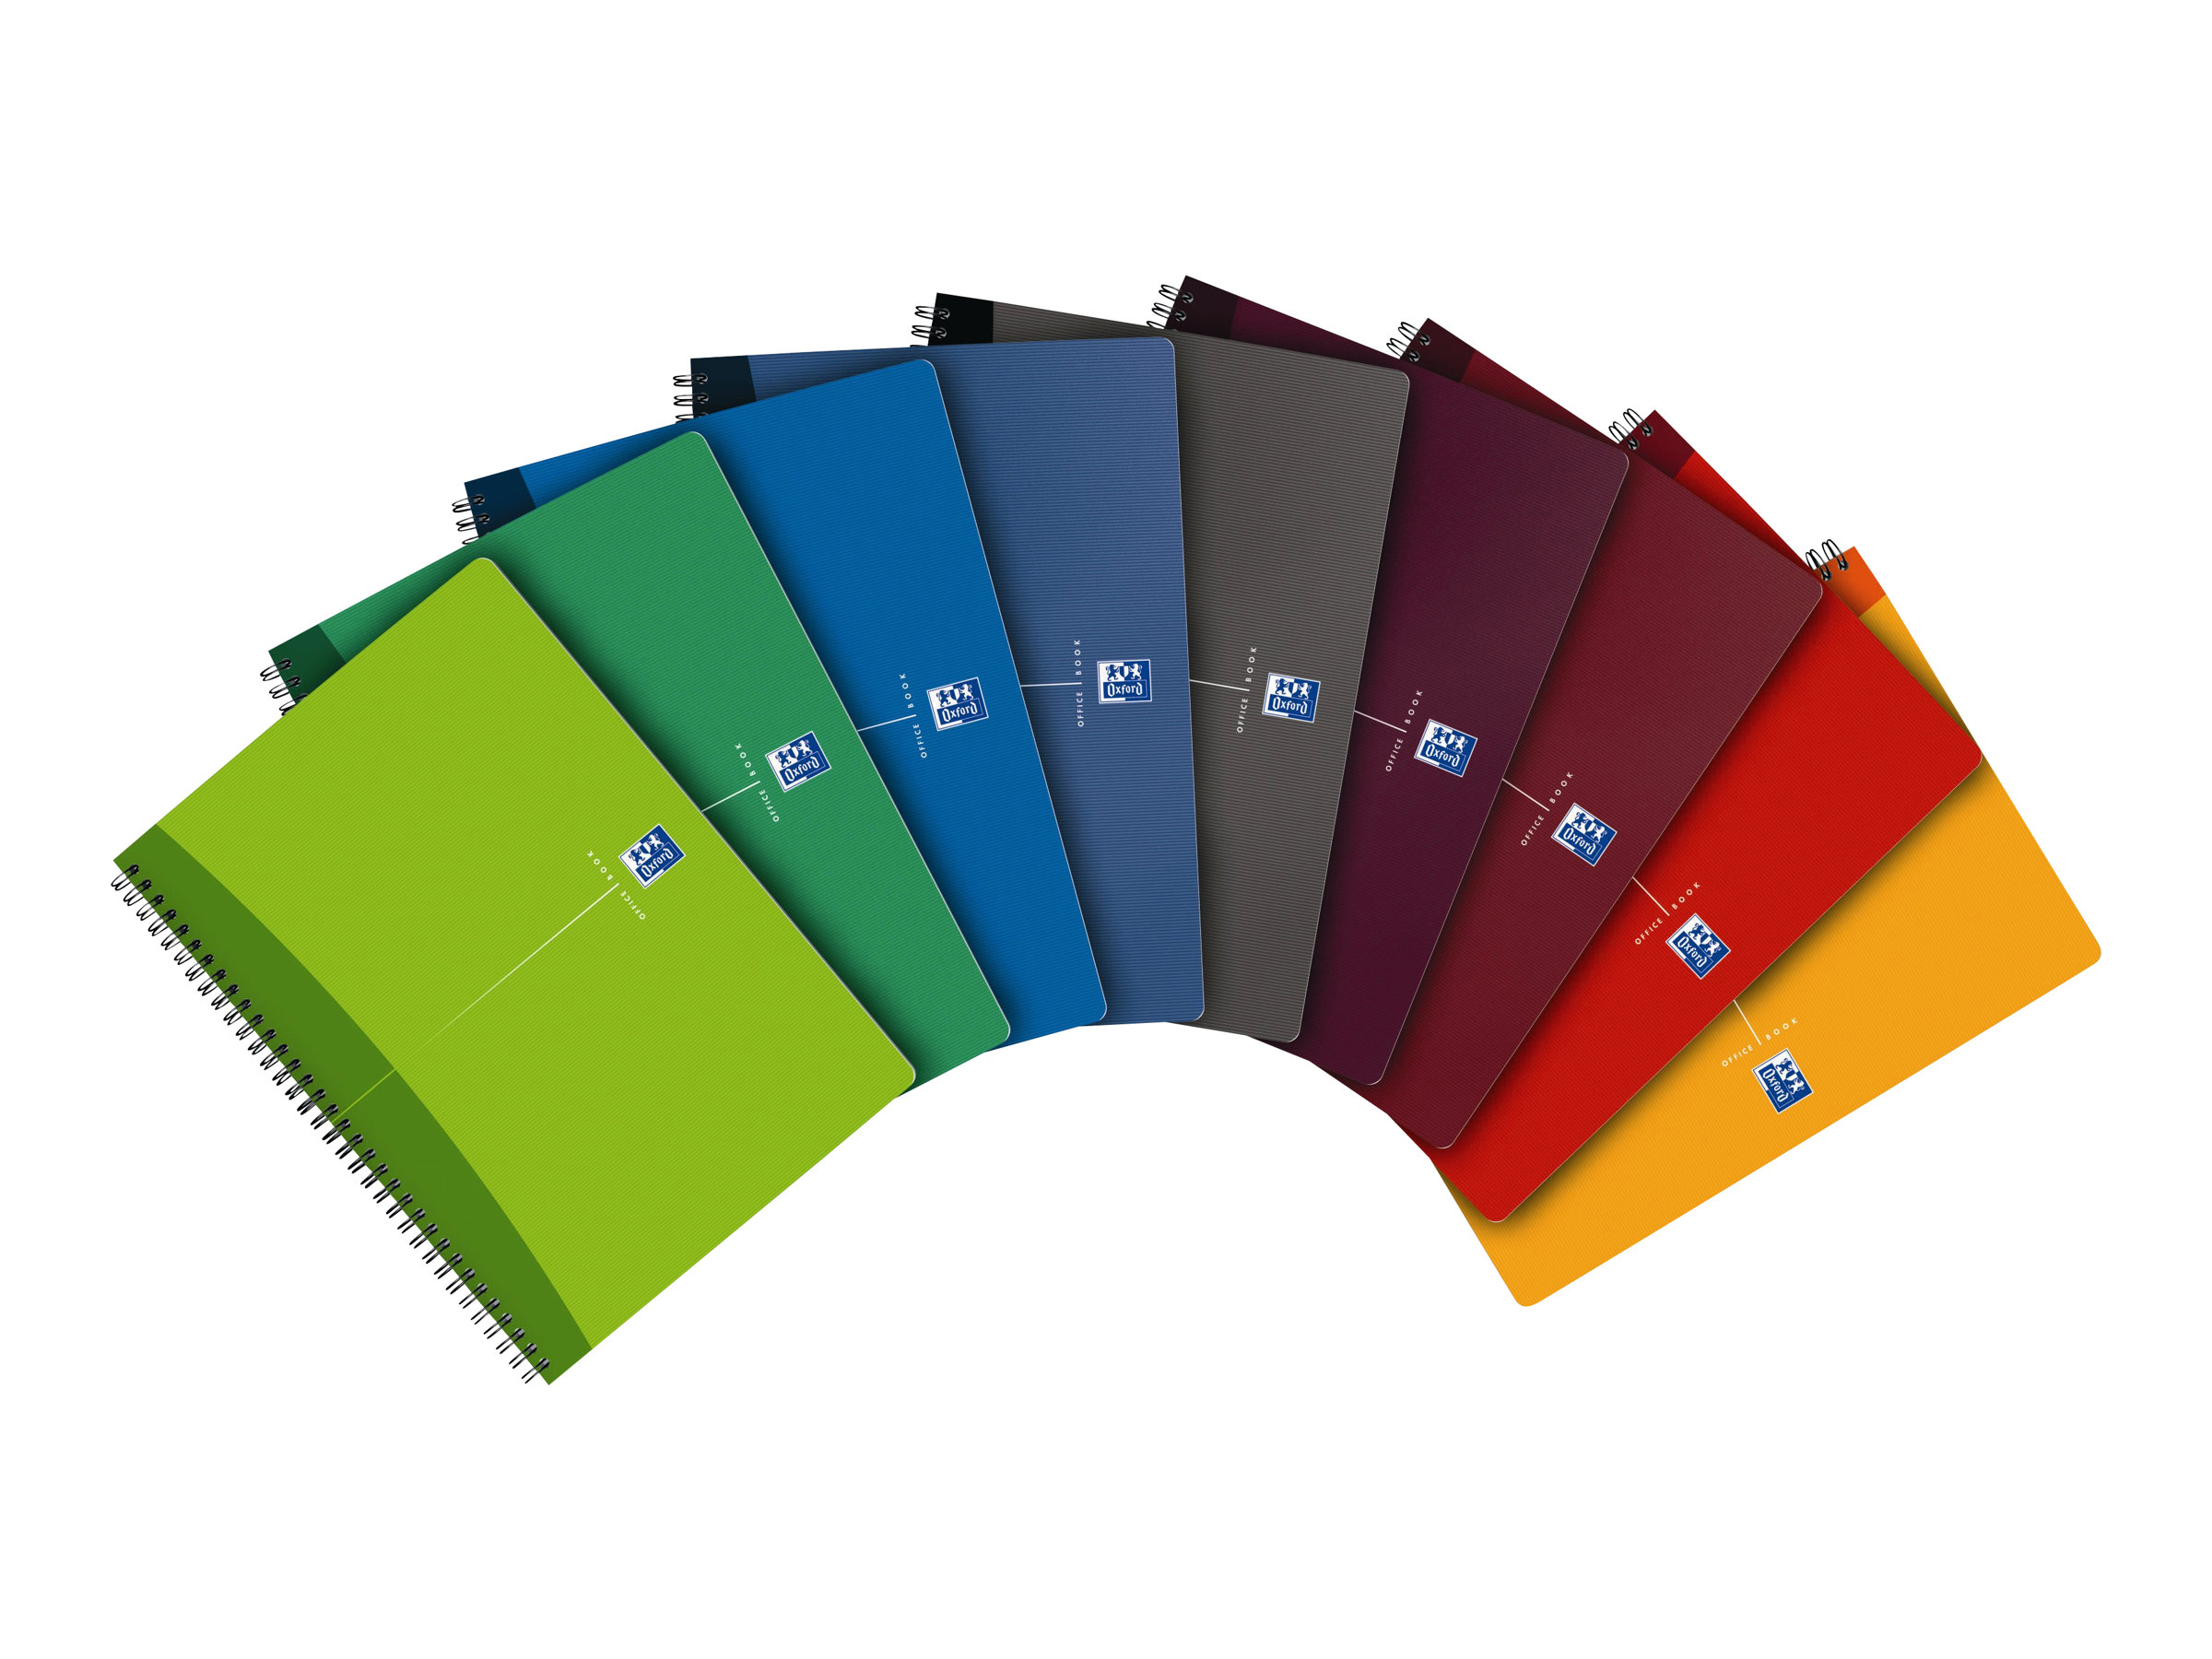 Cahiers professionnels Oxford Office Essentials - Cahier - A4 - 180 pages - quadrillé - 5x5 - couvertures aux couleurs assorties - carton